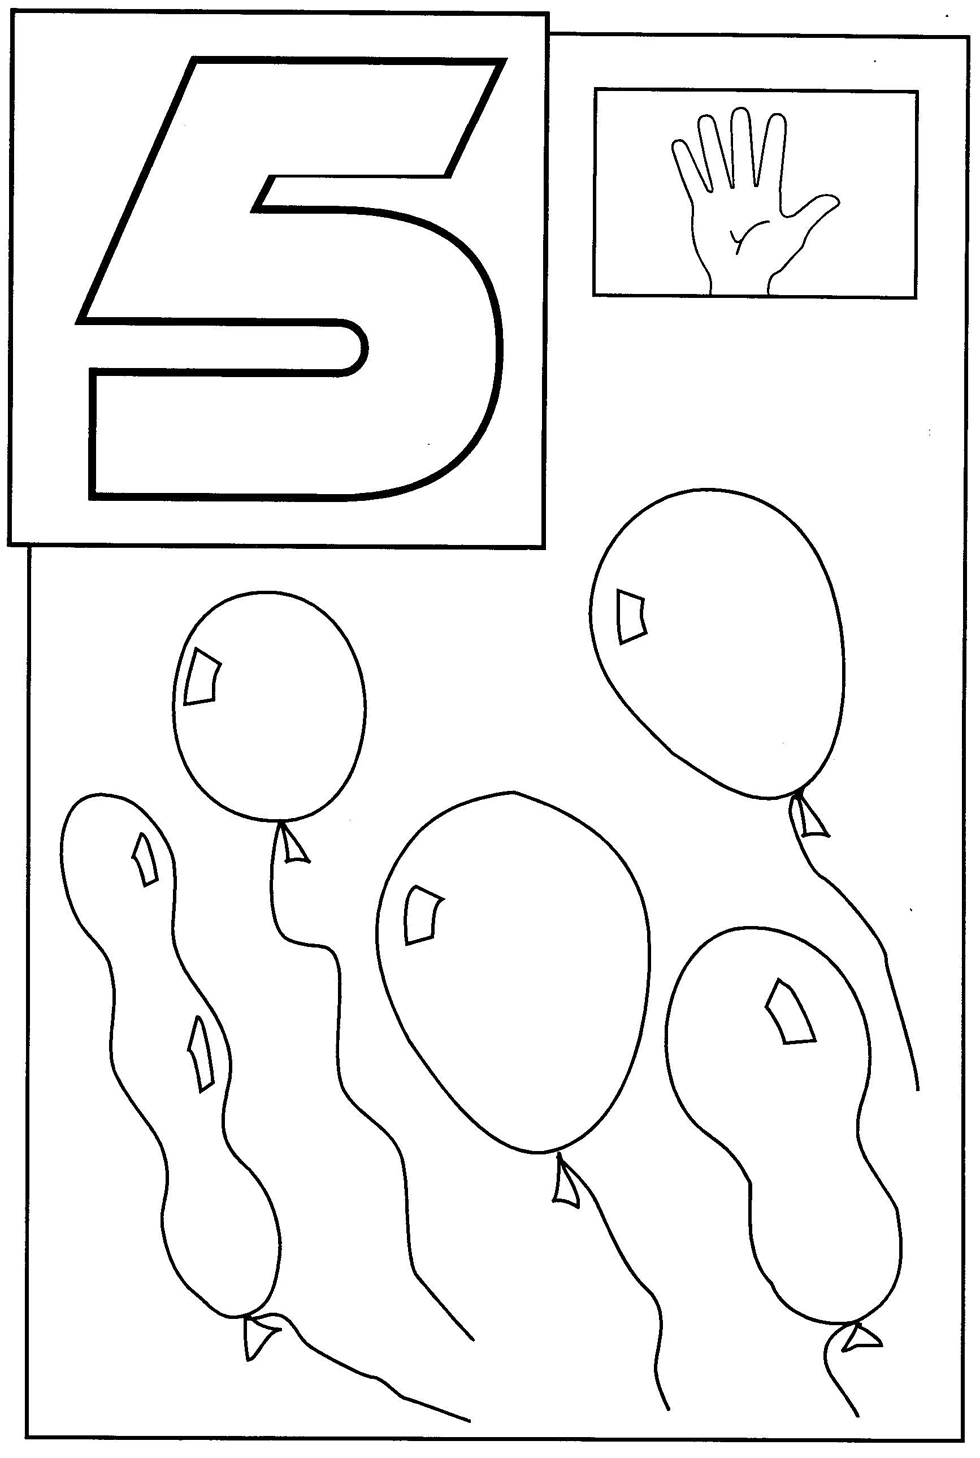 chick coloring pages balloons coloring - Toddler Coloring Page